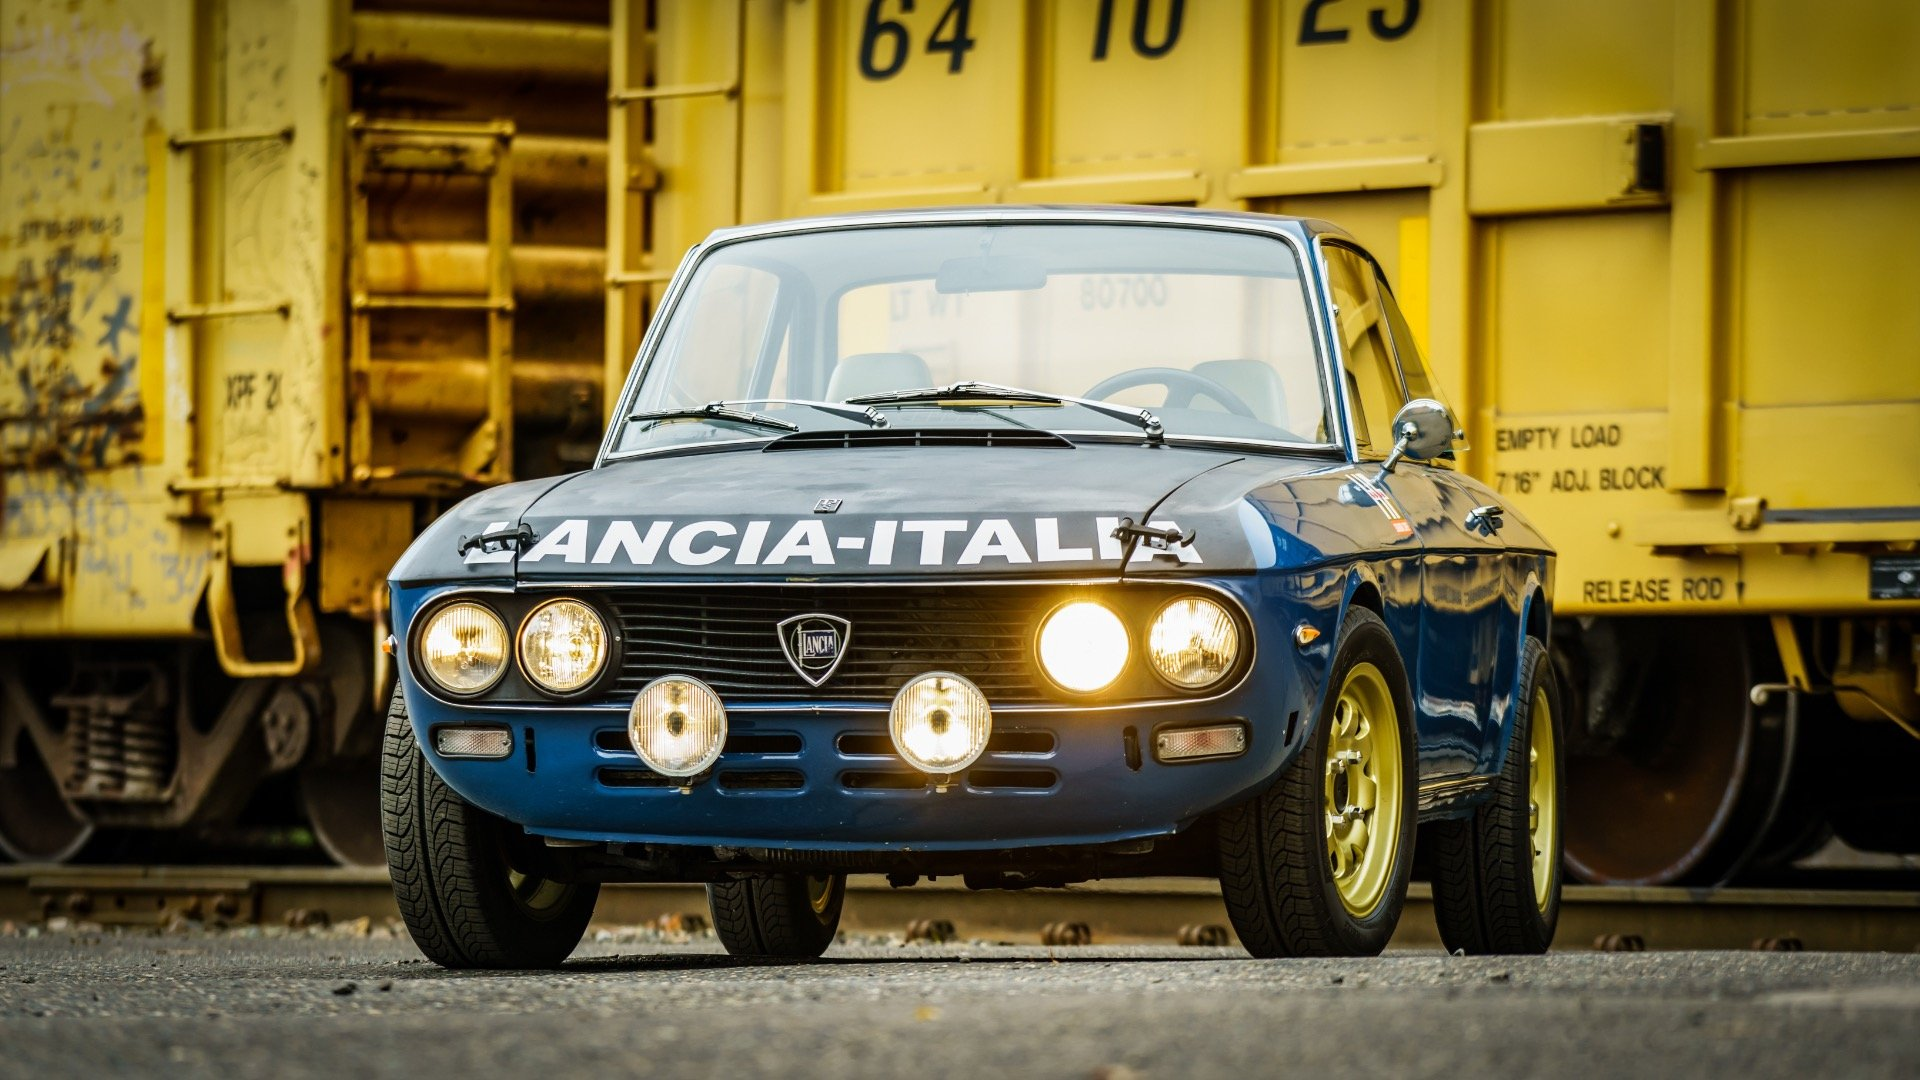 1974 Lancia Fulvia 1.3S = Blue Driver 5 speed 9k miles $23k For Sale (picture 1 of 6)